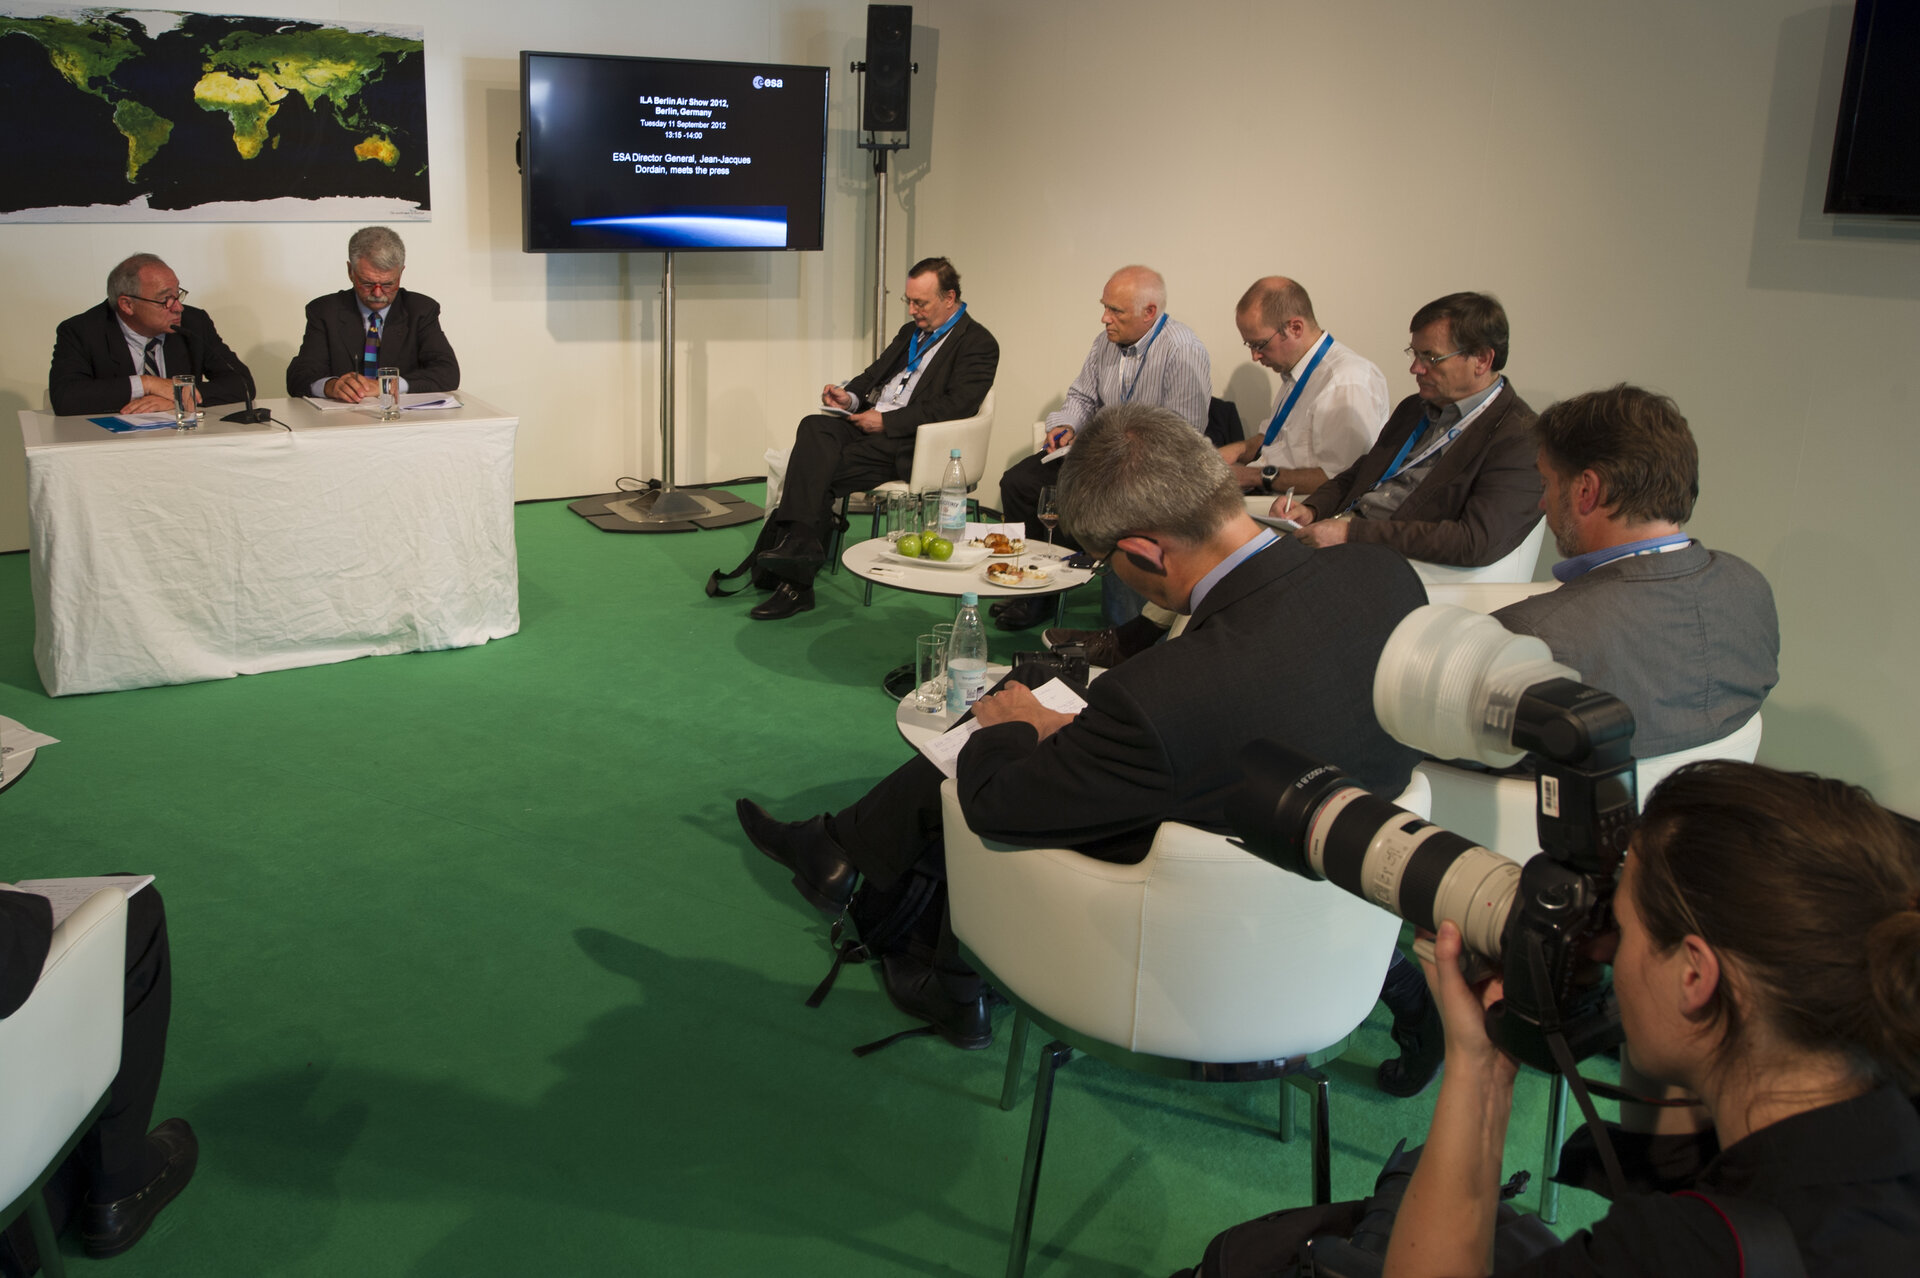 J.J. Dordain meets the press, 11 September 2012